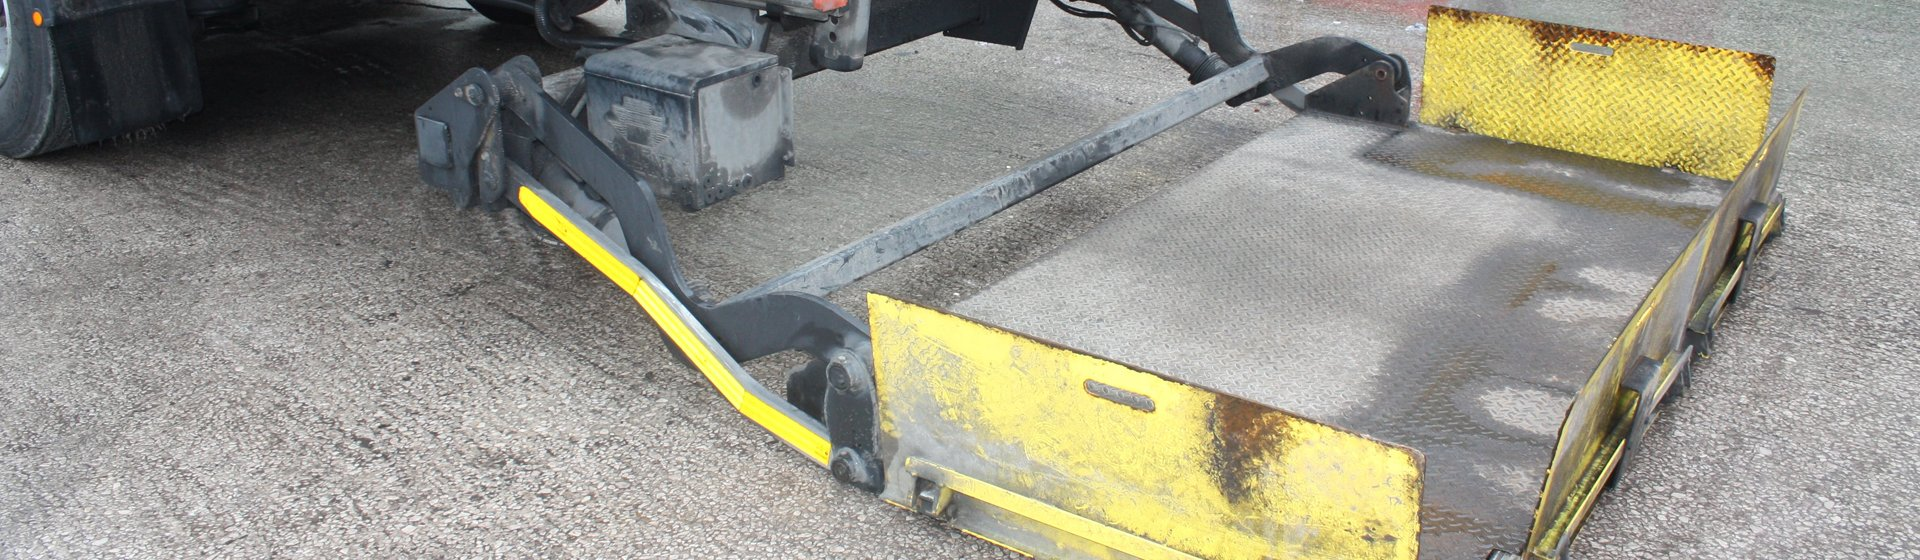 LOLER Inspections by P. Airey Tail Lifts